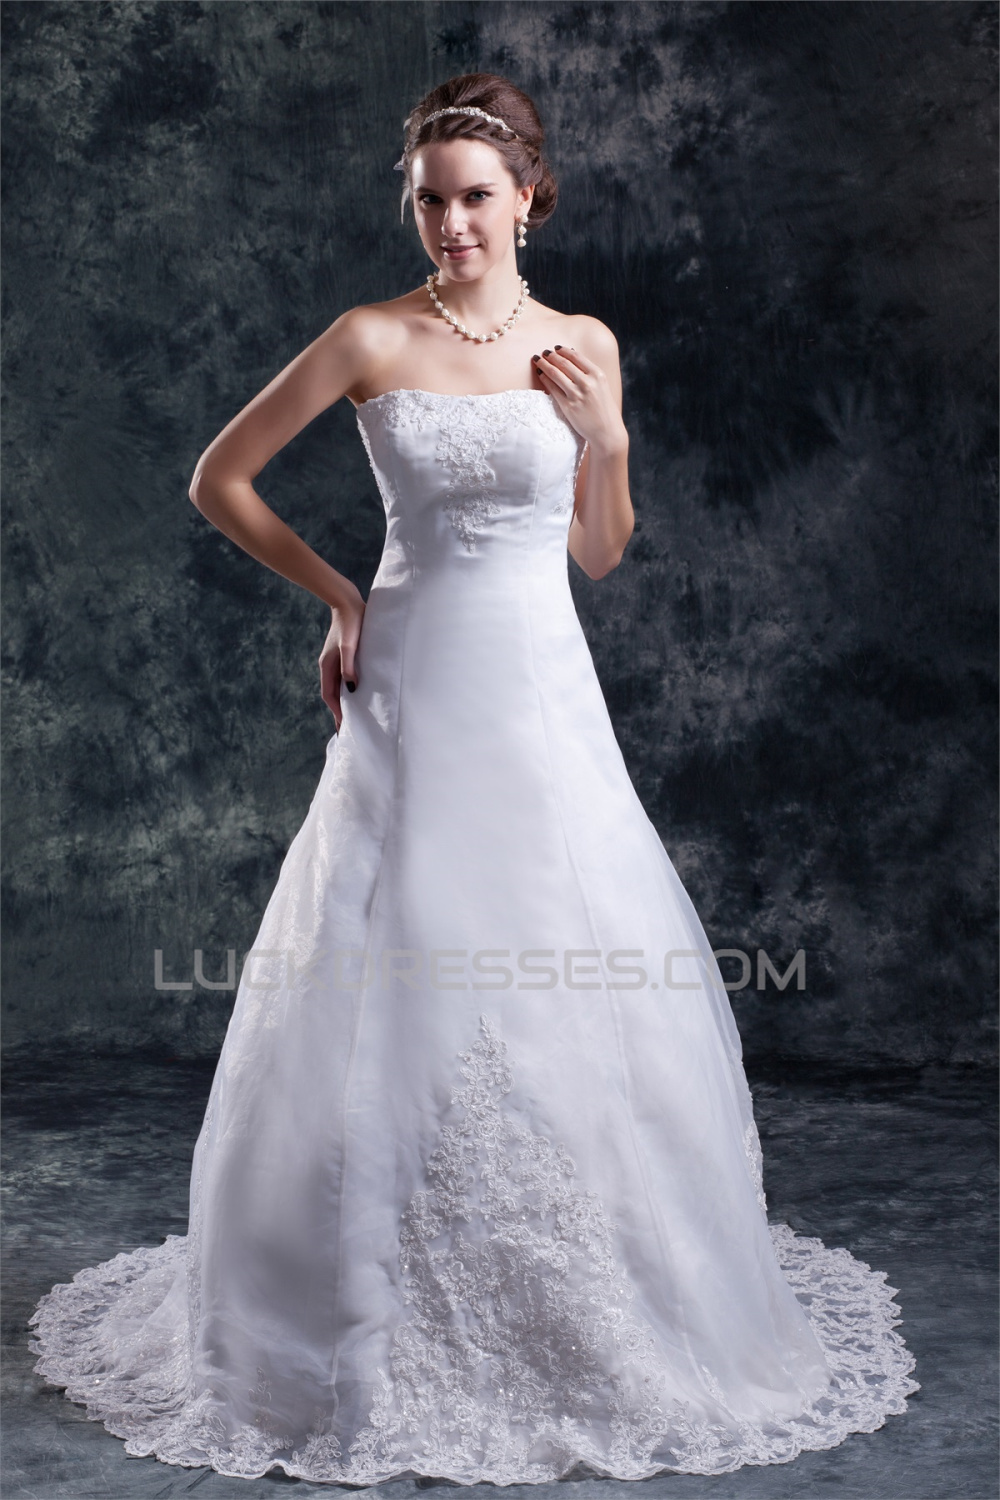 Wholesale A-Line Sleeveless Strapless Satin Organza Wedding Dresses ...